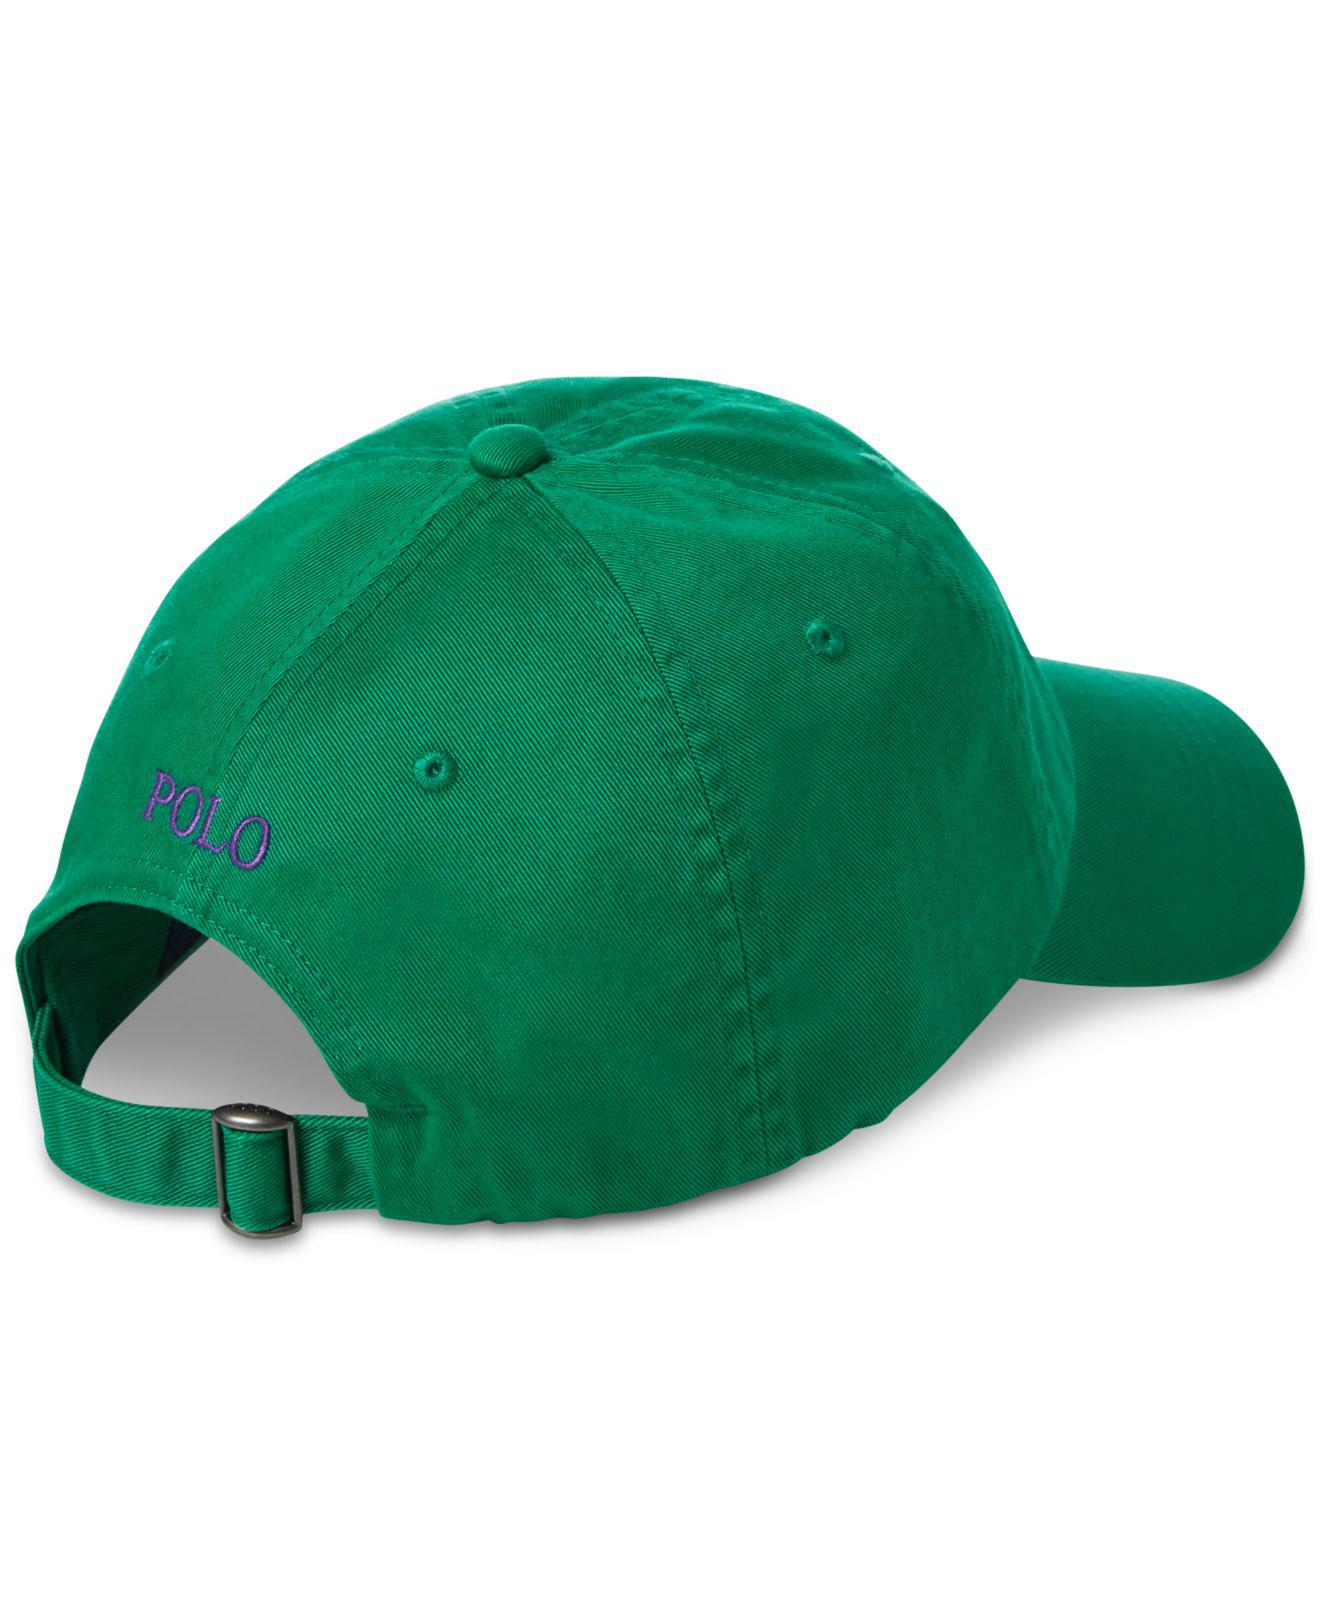 Lyst - Polo Ralph Lauren Cotton Chino Baseball Cap in Green for Men - Save  51.282051282051285% 598edc8ac29d